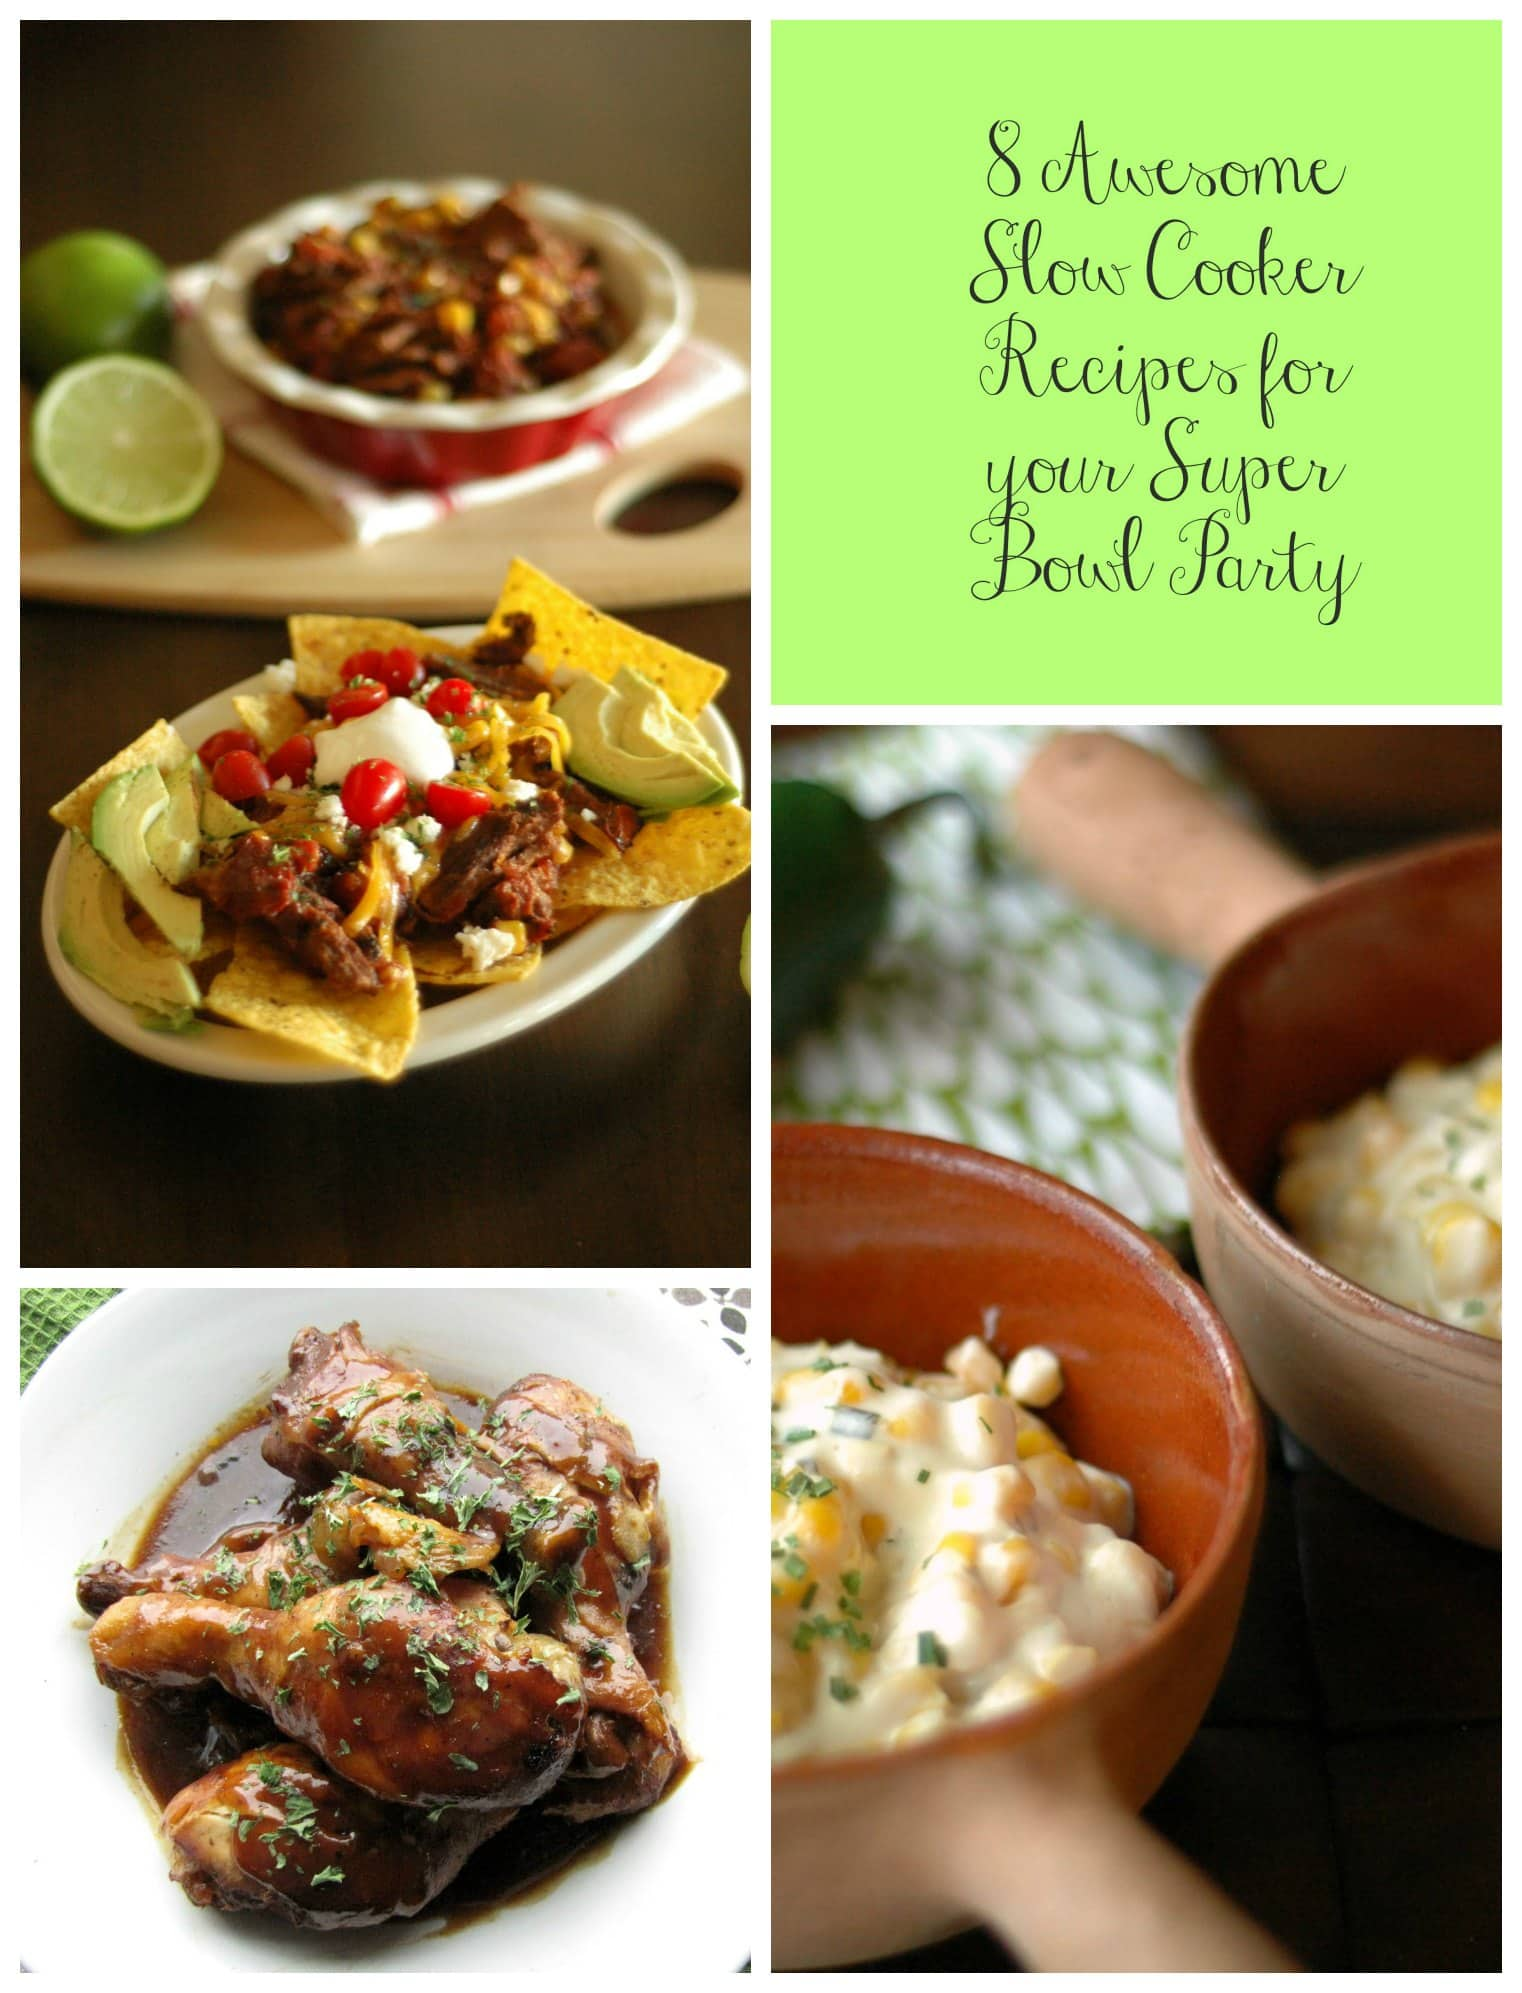 8 Awesome Slow Cooker Recipes for Your Super Bowl Party